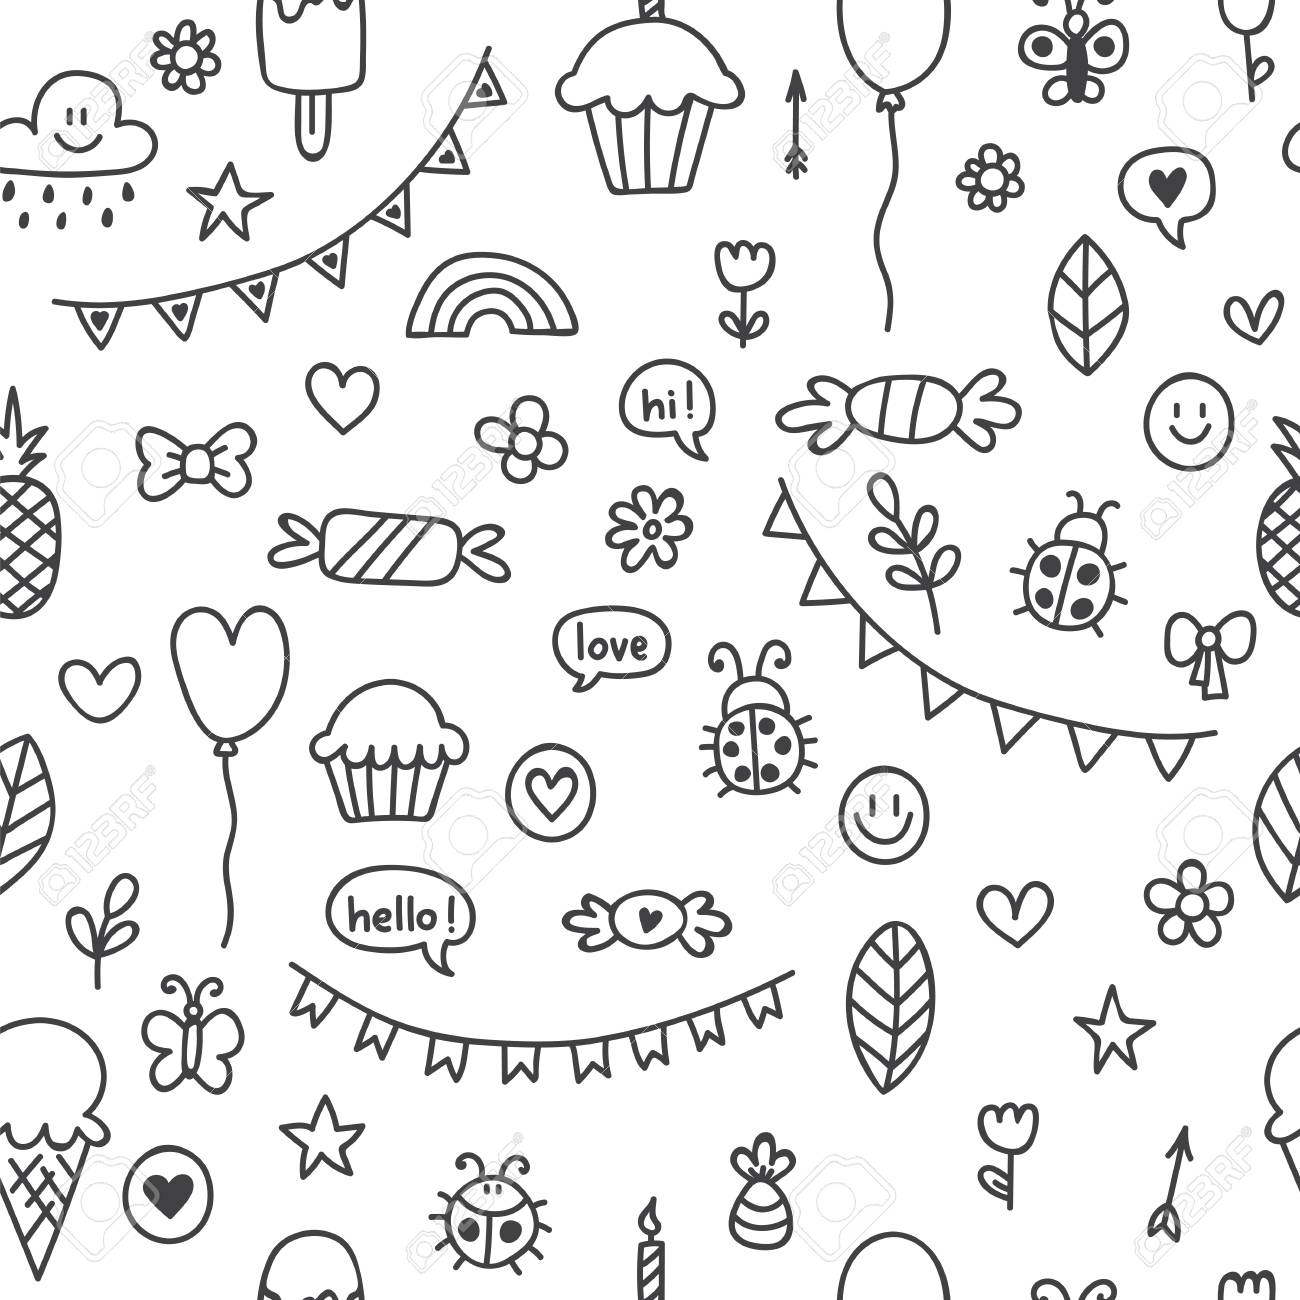 Background for cute little boys and girls hand drawn children drawings color seamless pattern